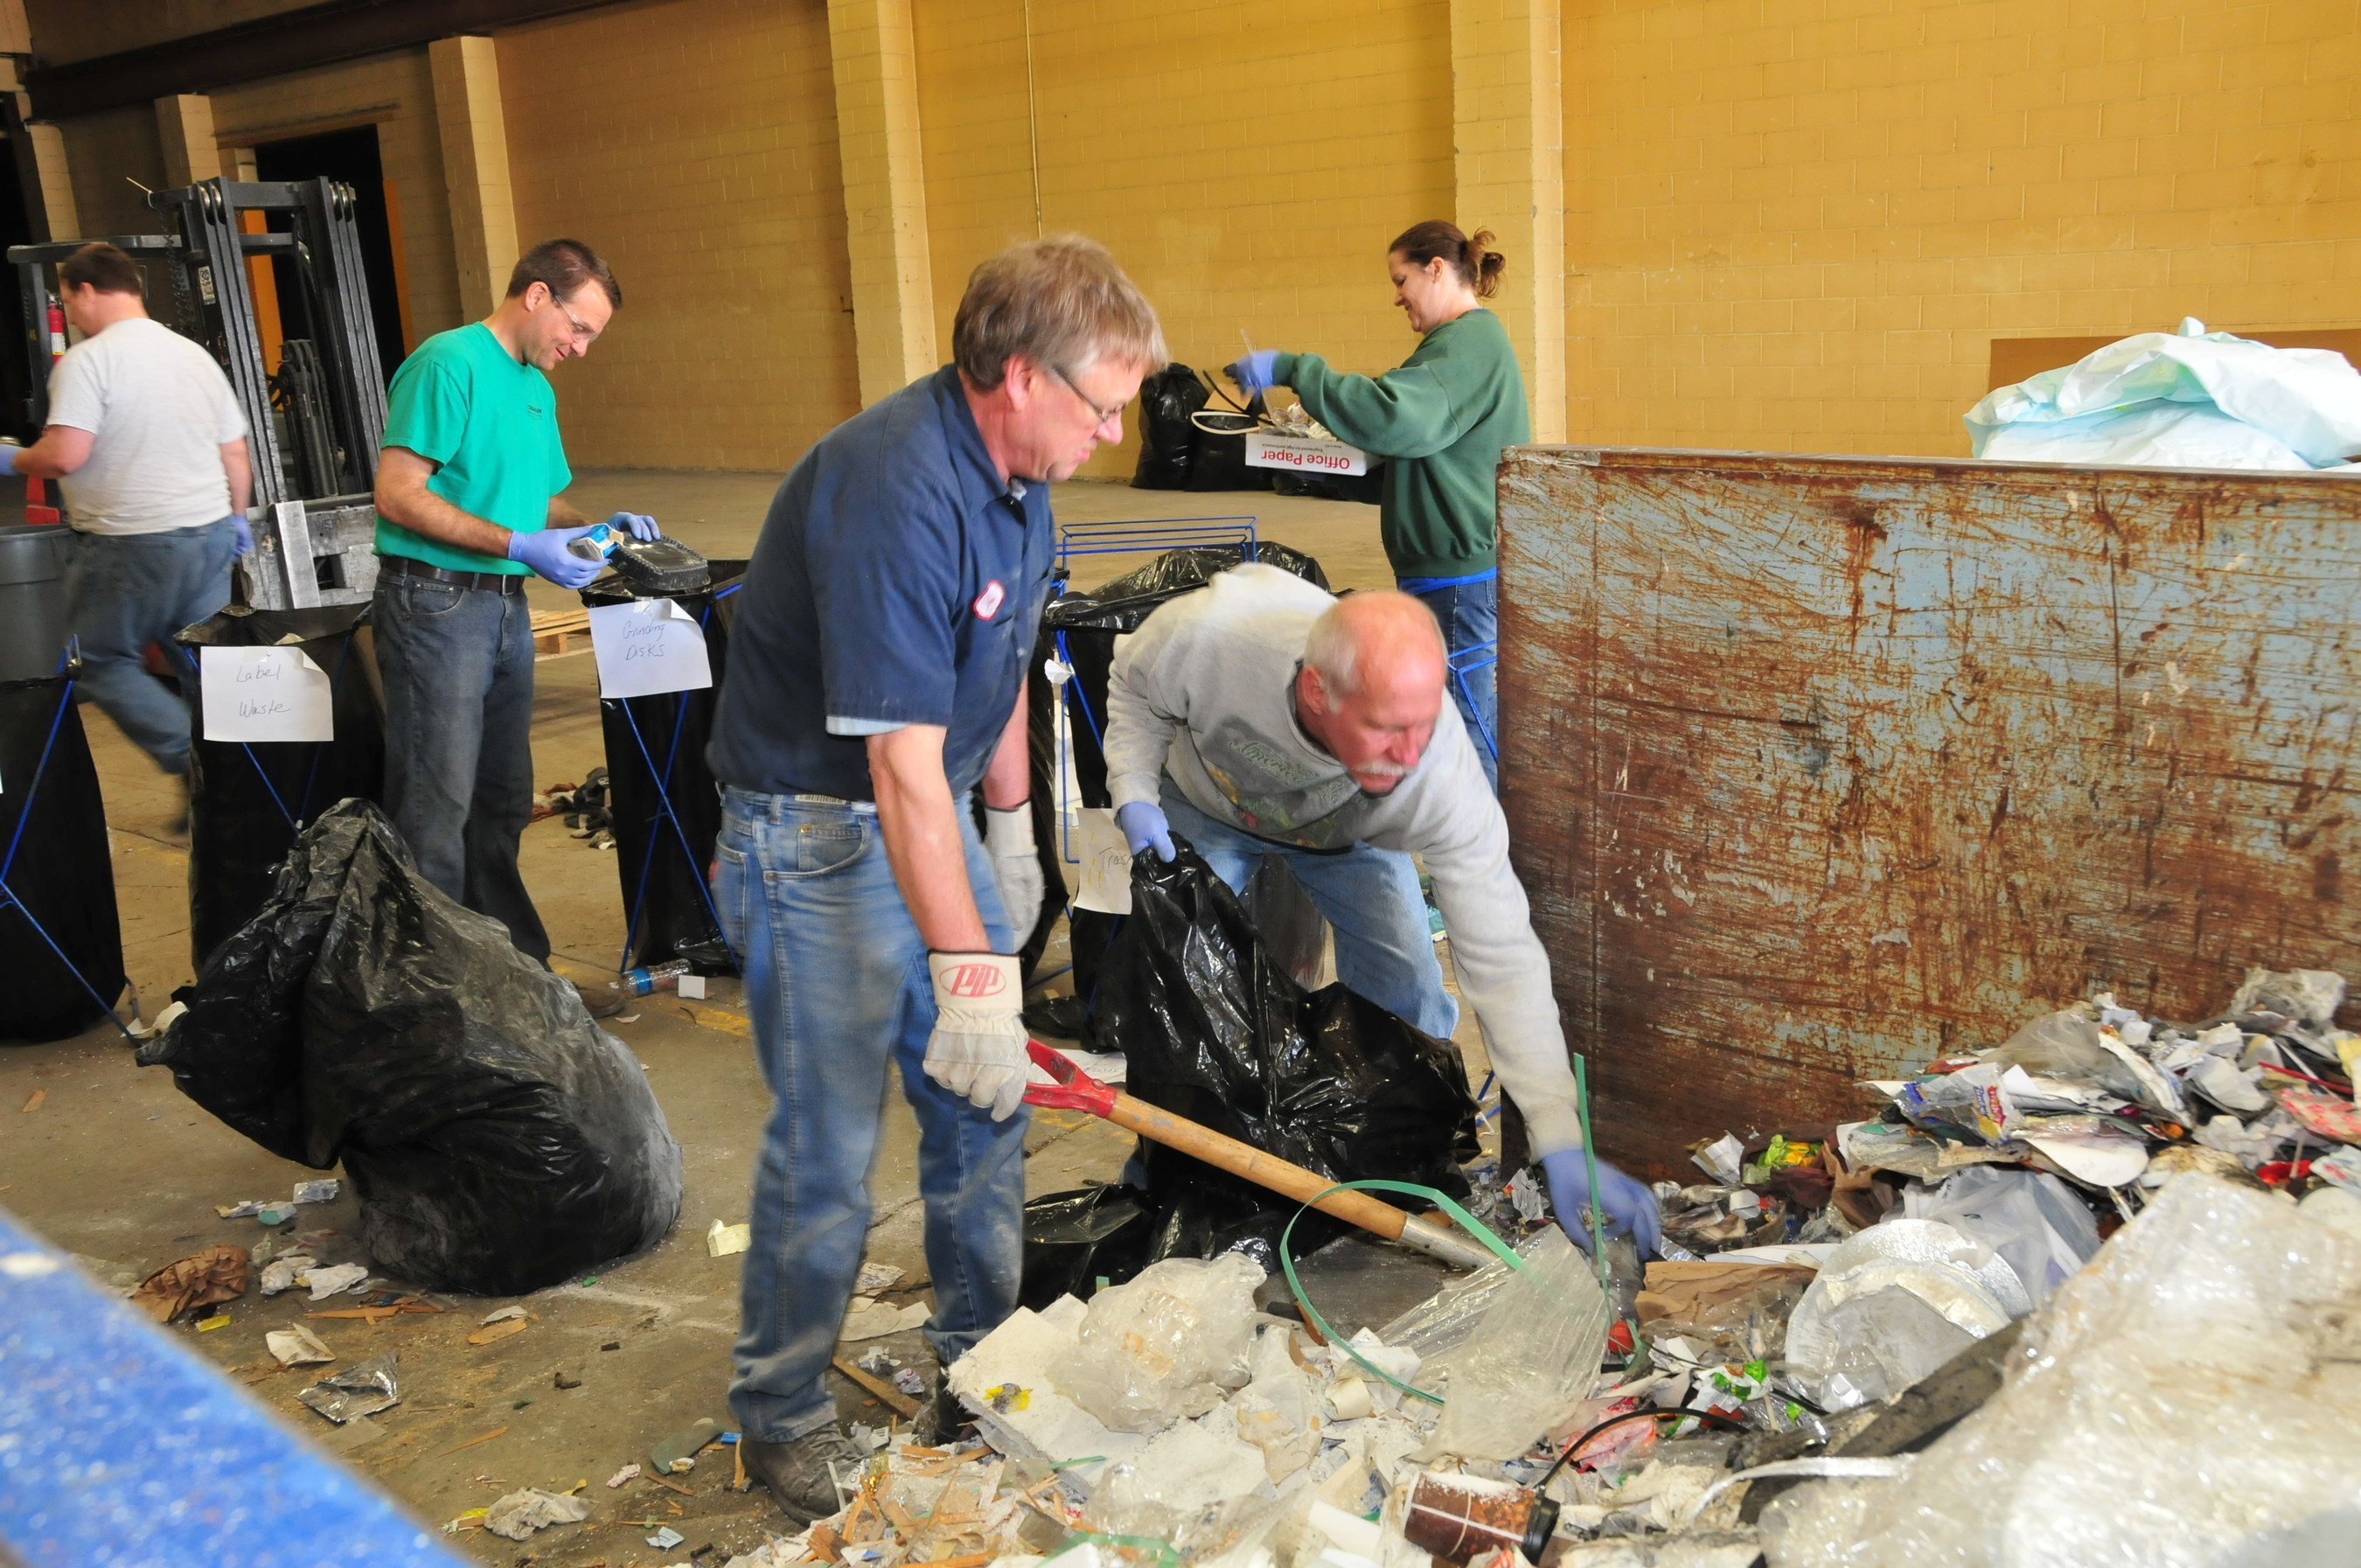 Curries employees participate in a dumpster dive to find out how they can manage their waste more responsibly.